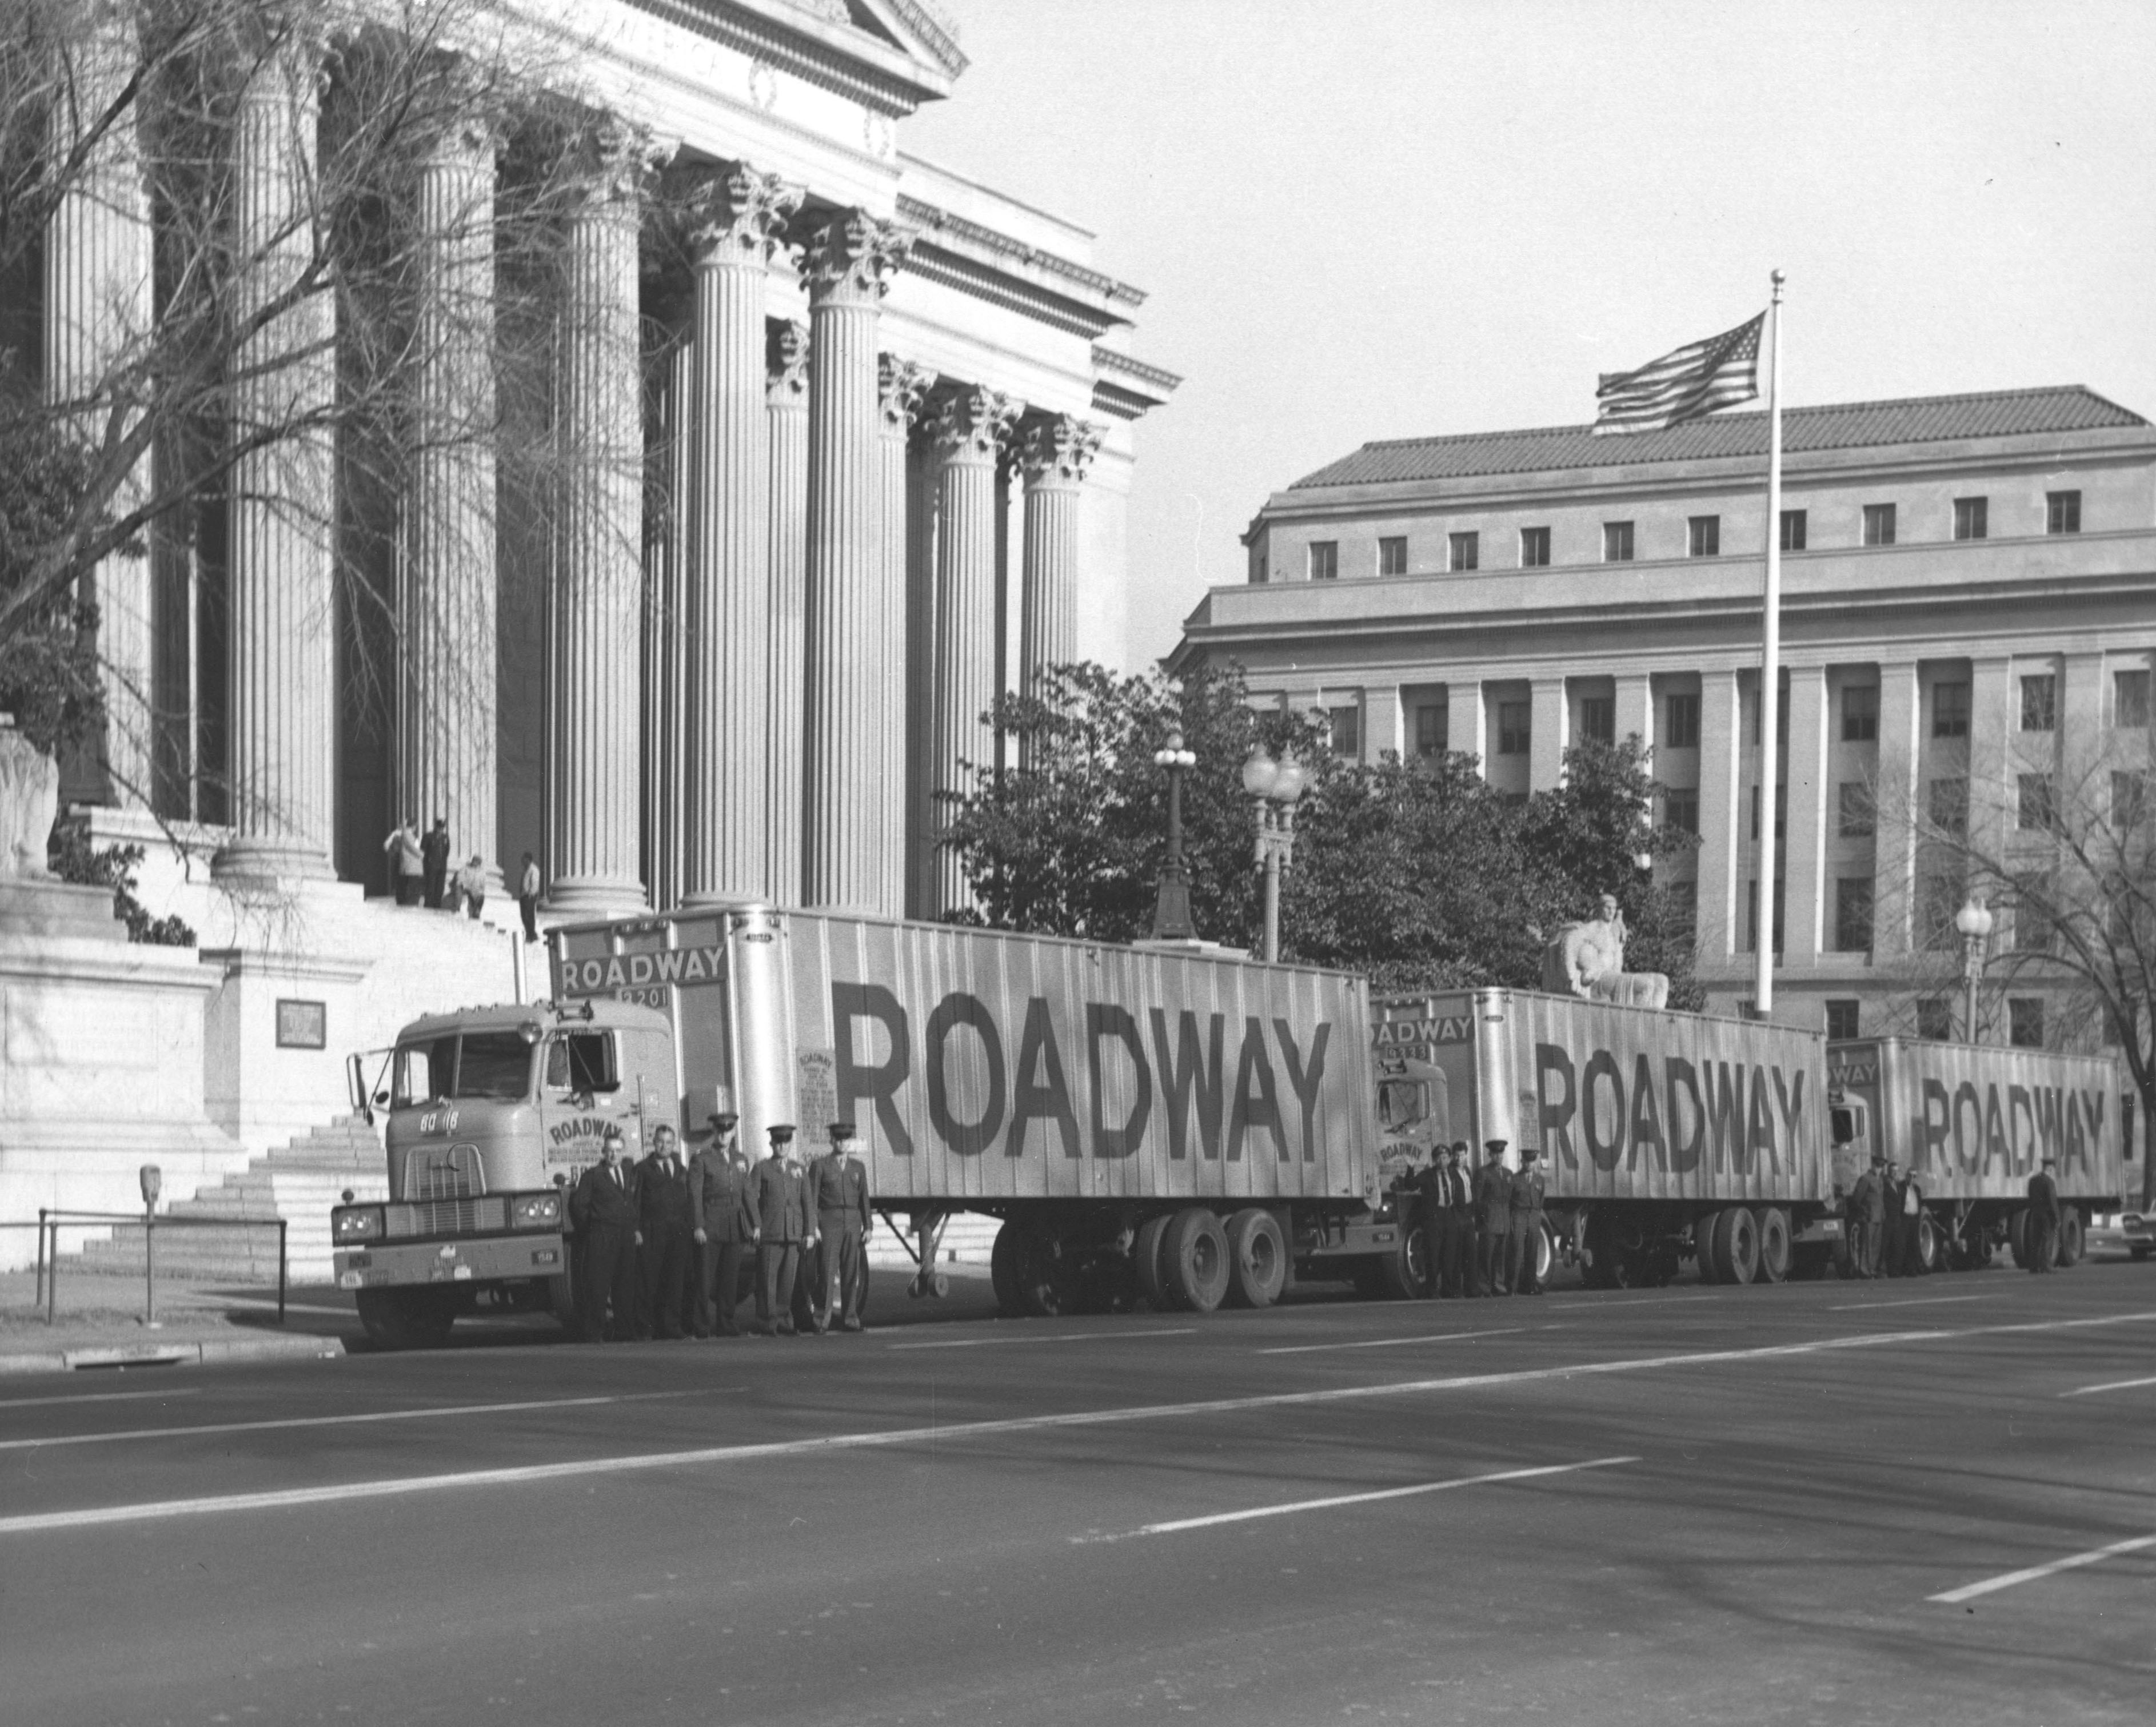 In 1961, three forty foot trailer trucks left the National Archives in Washington, DC, headed for Abilene, Kansas, containing both the official and personal papers of President Dwight D. Eisenhower, 1/13/1961. (National Archives Identifier 12170067)